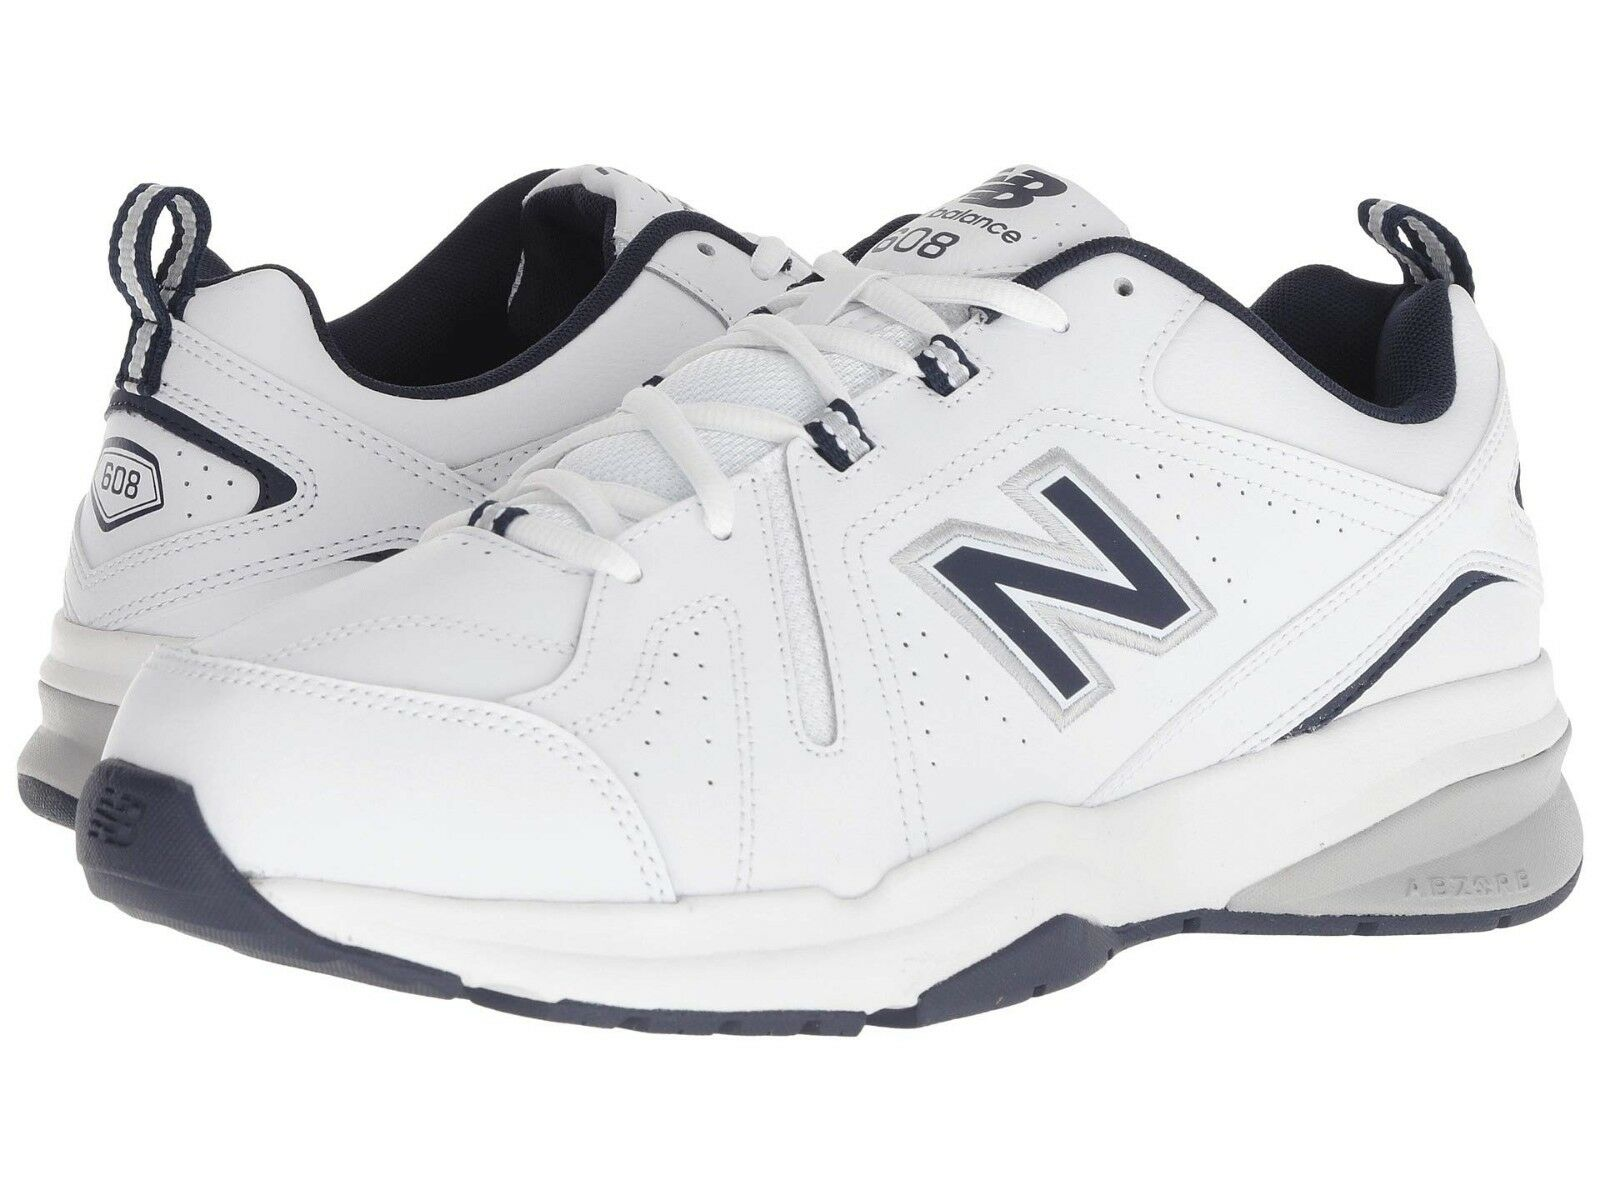 NEW Mens New New New Balance 608v5 Weiß Navy Leather Athletic Training schuhe AUTHENTIC 9f4d7e